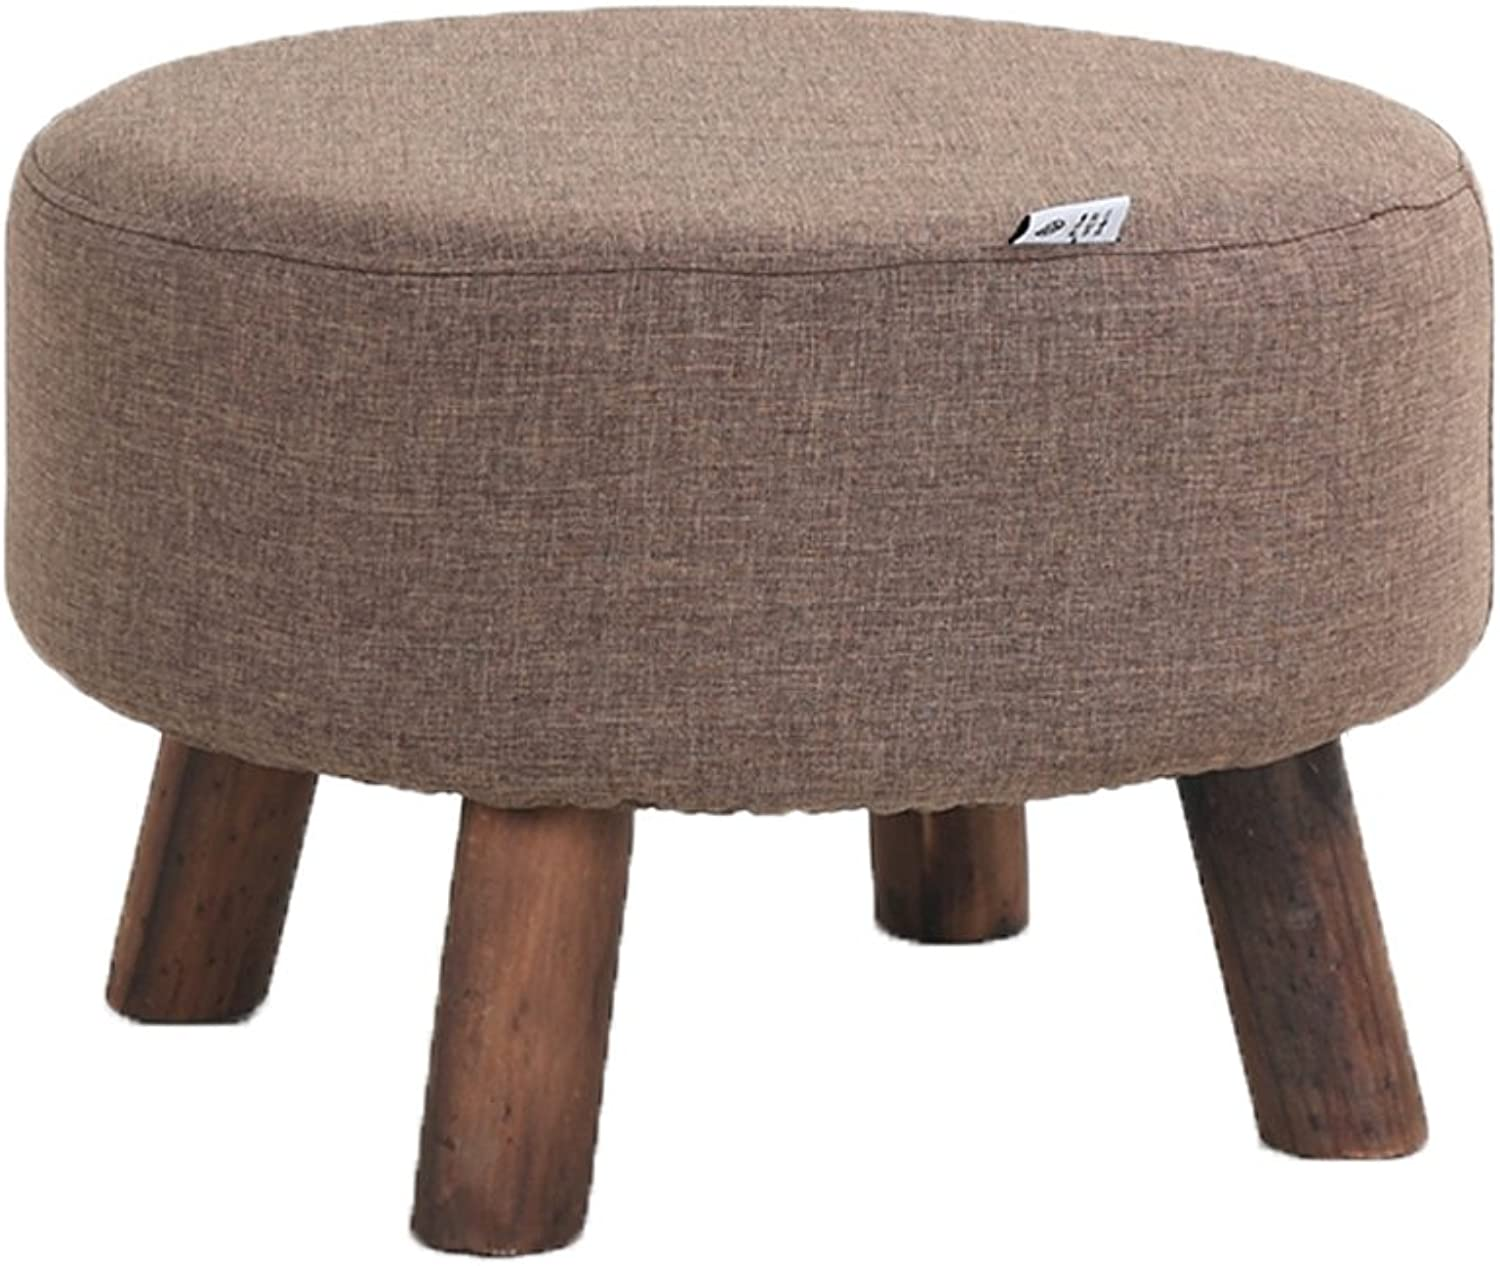 European Chair Solid Wood shoes Bench, Simple Small Stool, shoes, Bench, Cloth, Fabric, Living Room, Footstool, Sofa Stool (color   D)